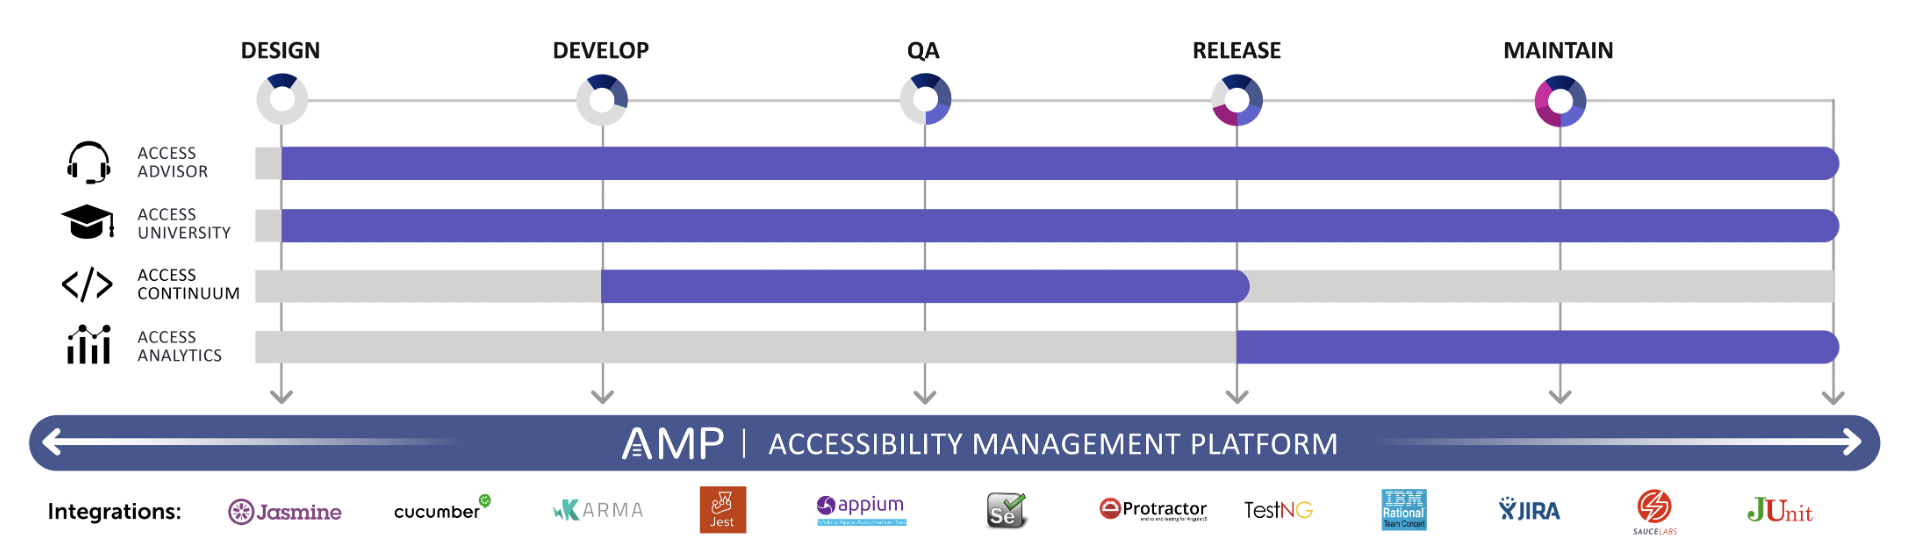 AMP is the platform for all products and covers all phases of the software development lifecycle with integrations for Jasmine, Cucumber, Karma, Jest, Appium, Selenium, Protactor, TestNG, IBM Rational Team Concert, JIRA, JUnit, and Sauce Labs. Access Advisor and University cover all phases as well; Access Continuum covers Develop, QA, Release stages; Access Analytics covers the QA, Release, and Maintain stages.